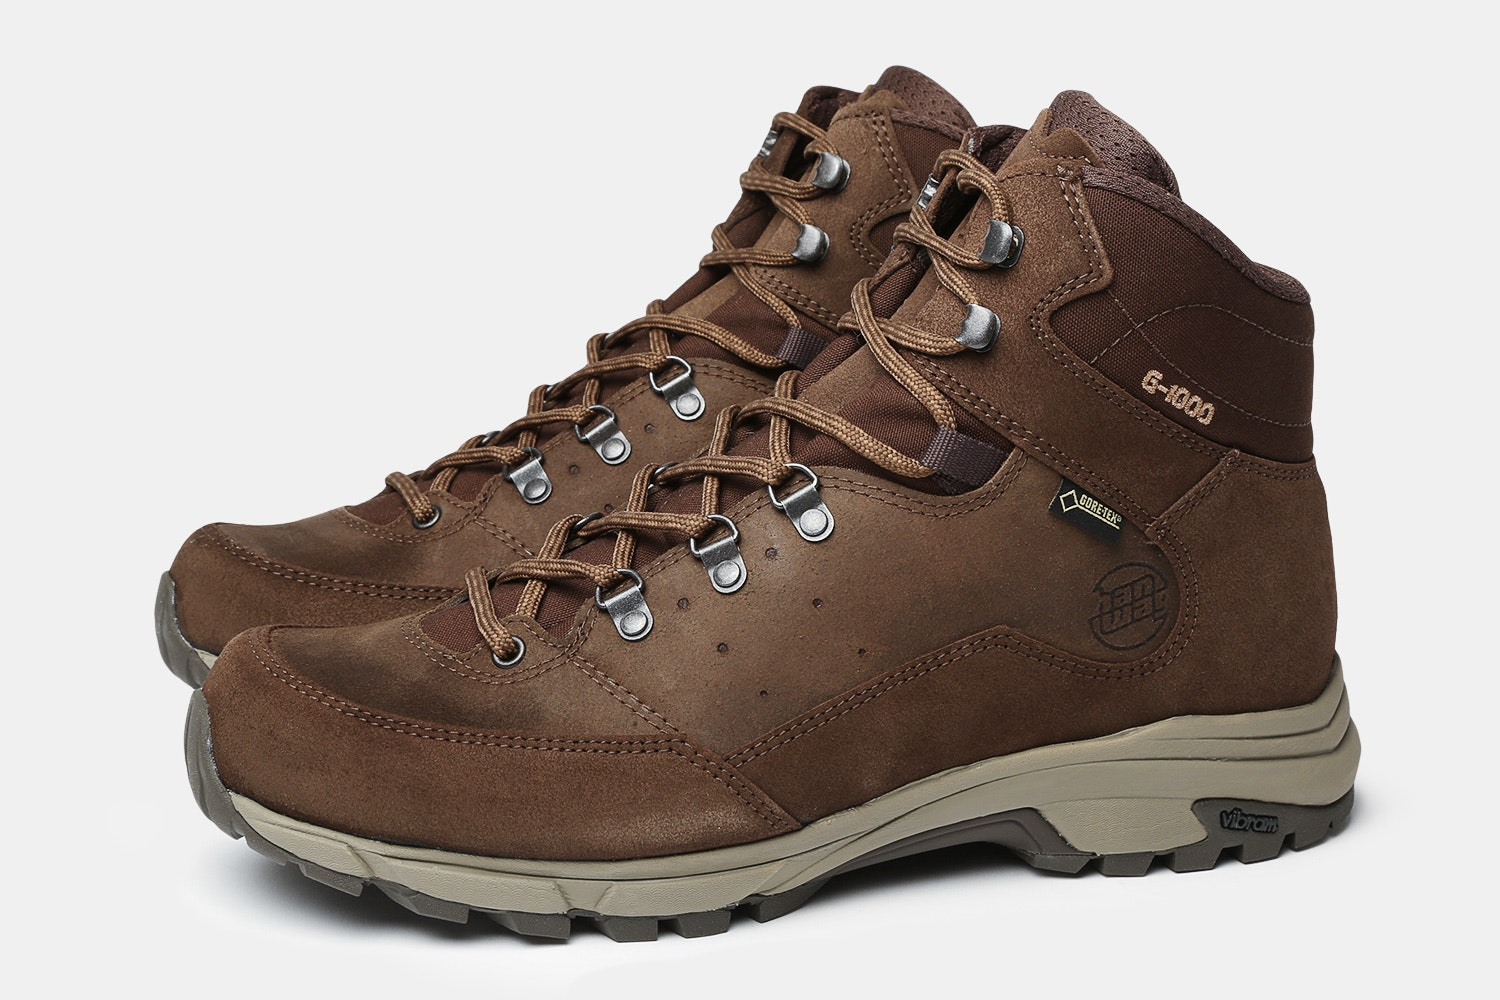 Hanwag Men's Tudela Light GTX Boots